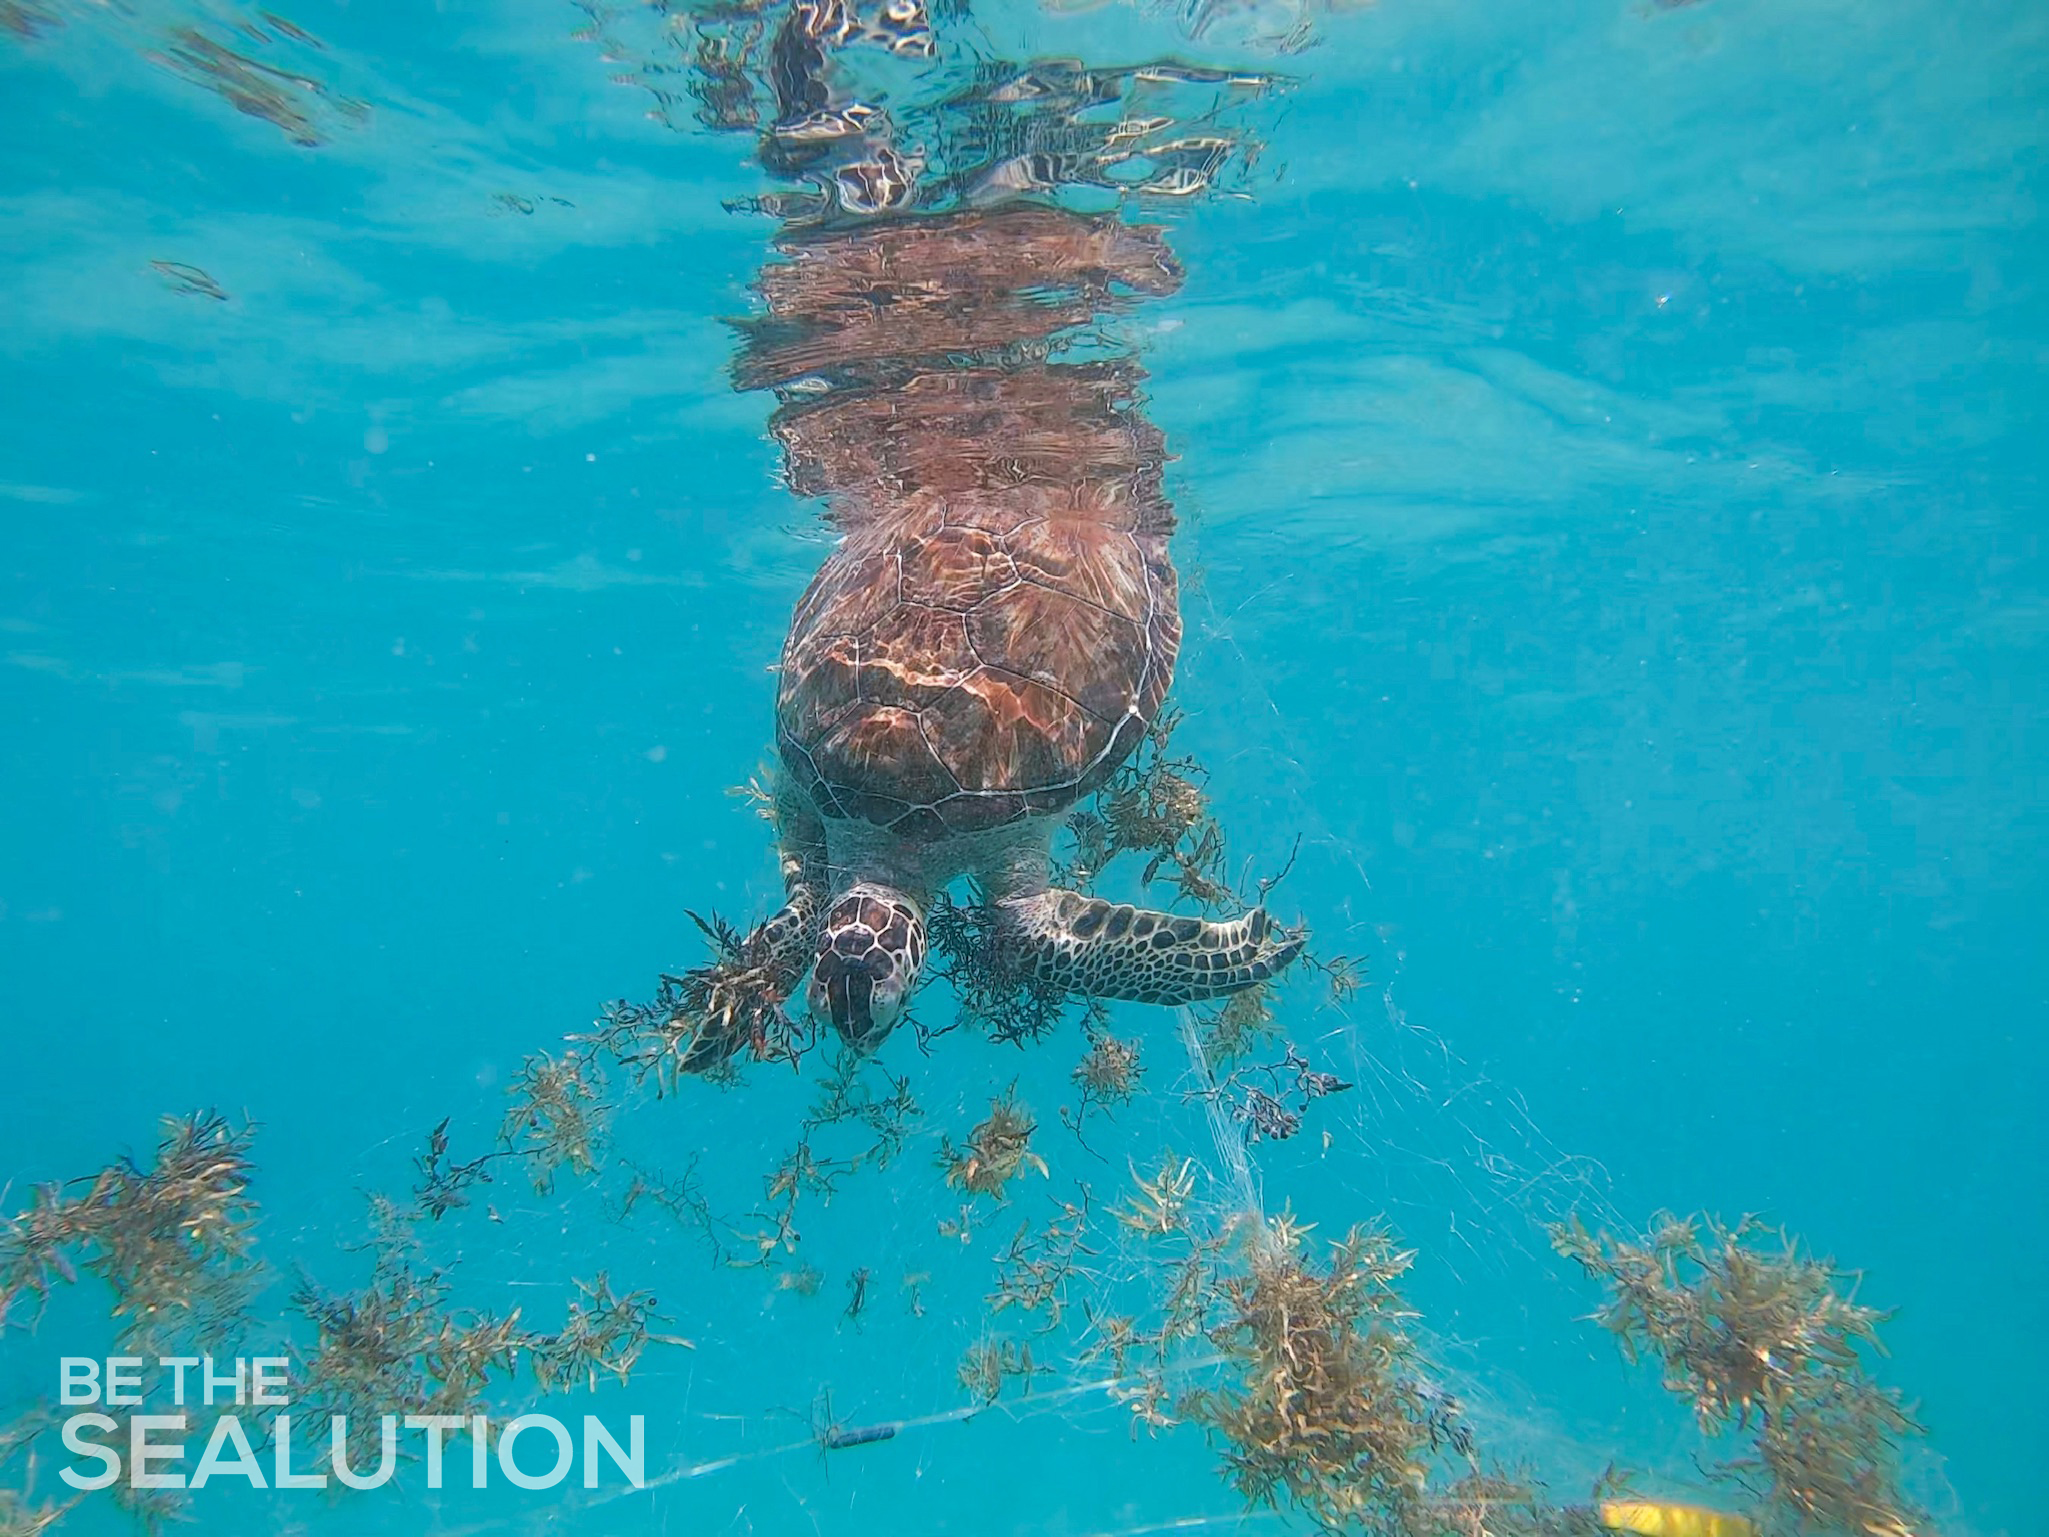 Juvenile green sea turtle strangled in gill net.